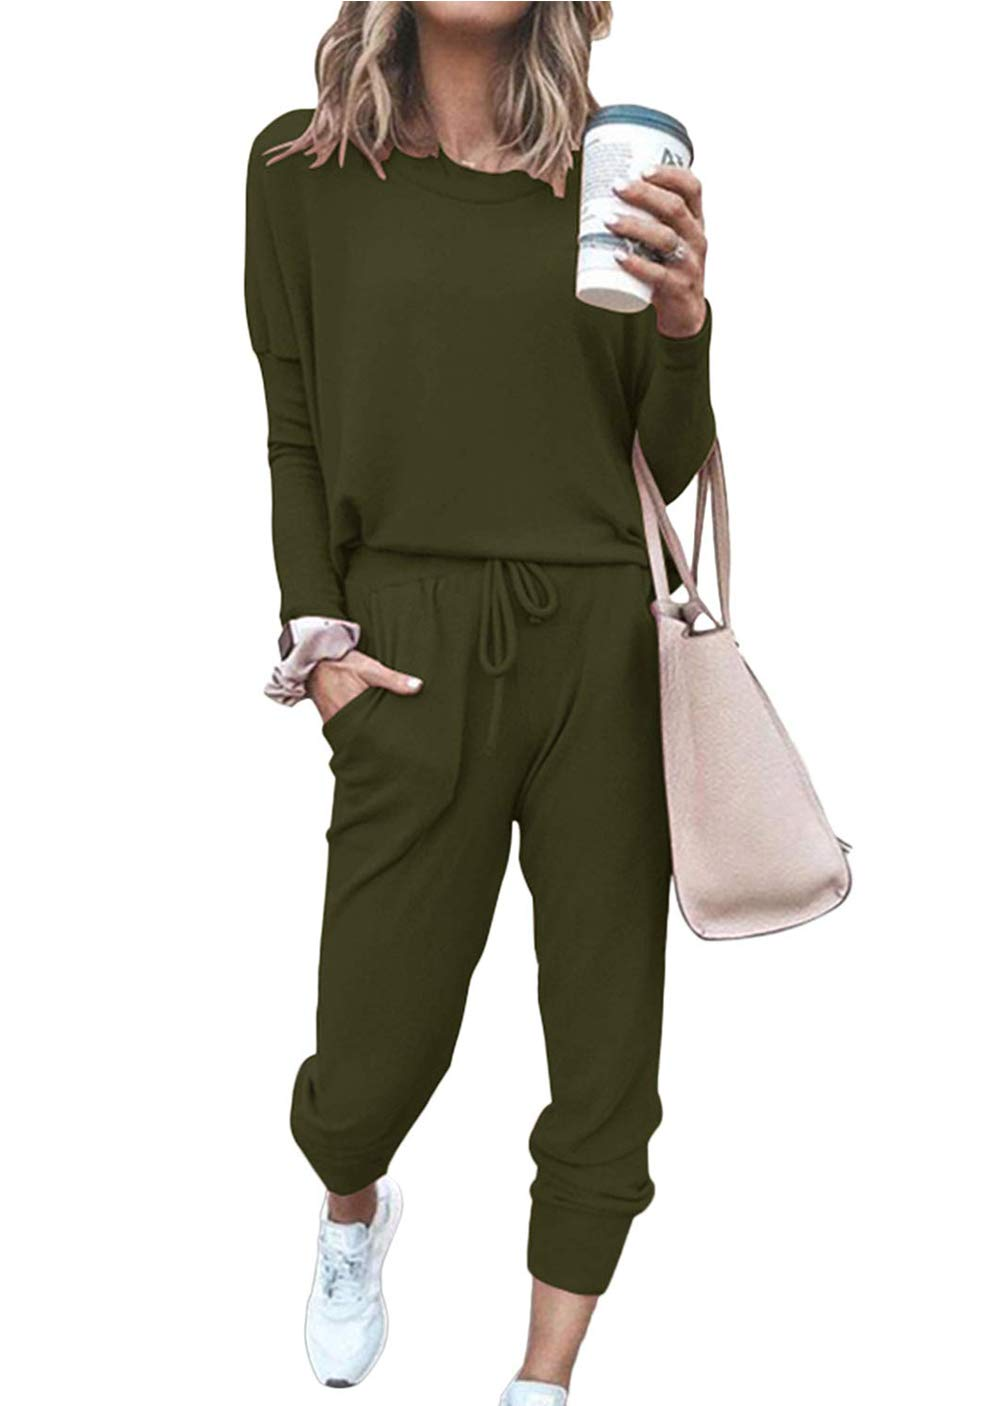 Women's Solid Two Piece Outfit Long Sleeve Crewneck Pullover Tops And Long Pants Tracksuits